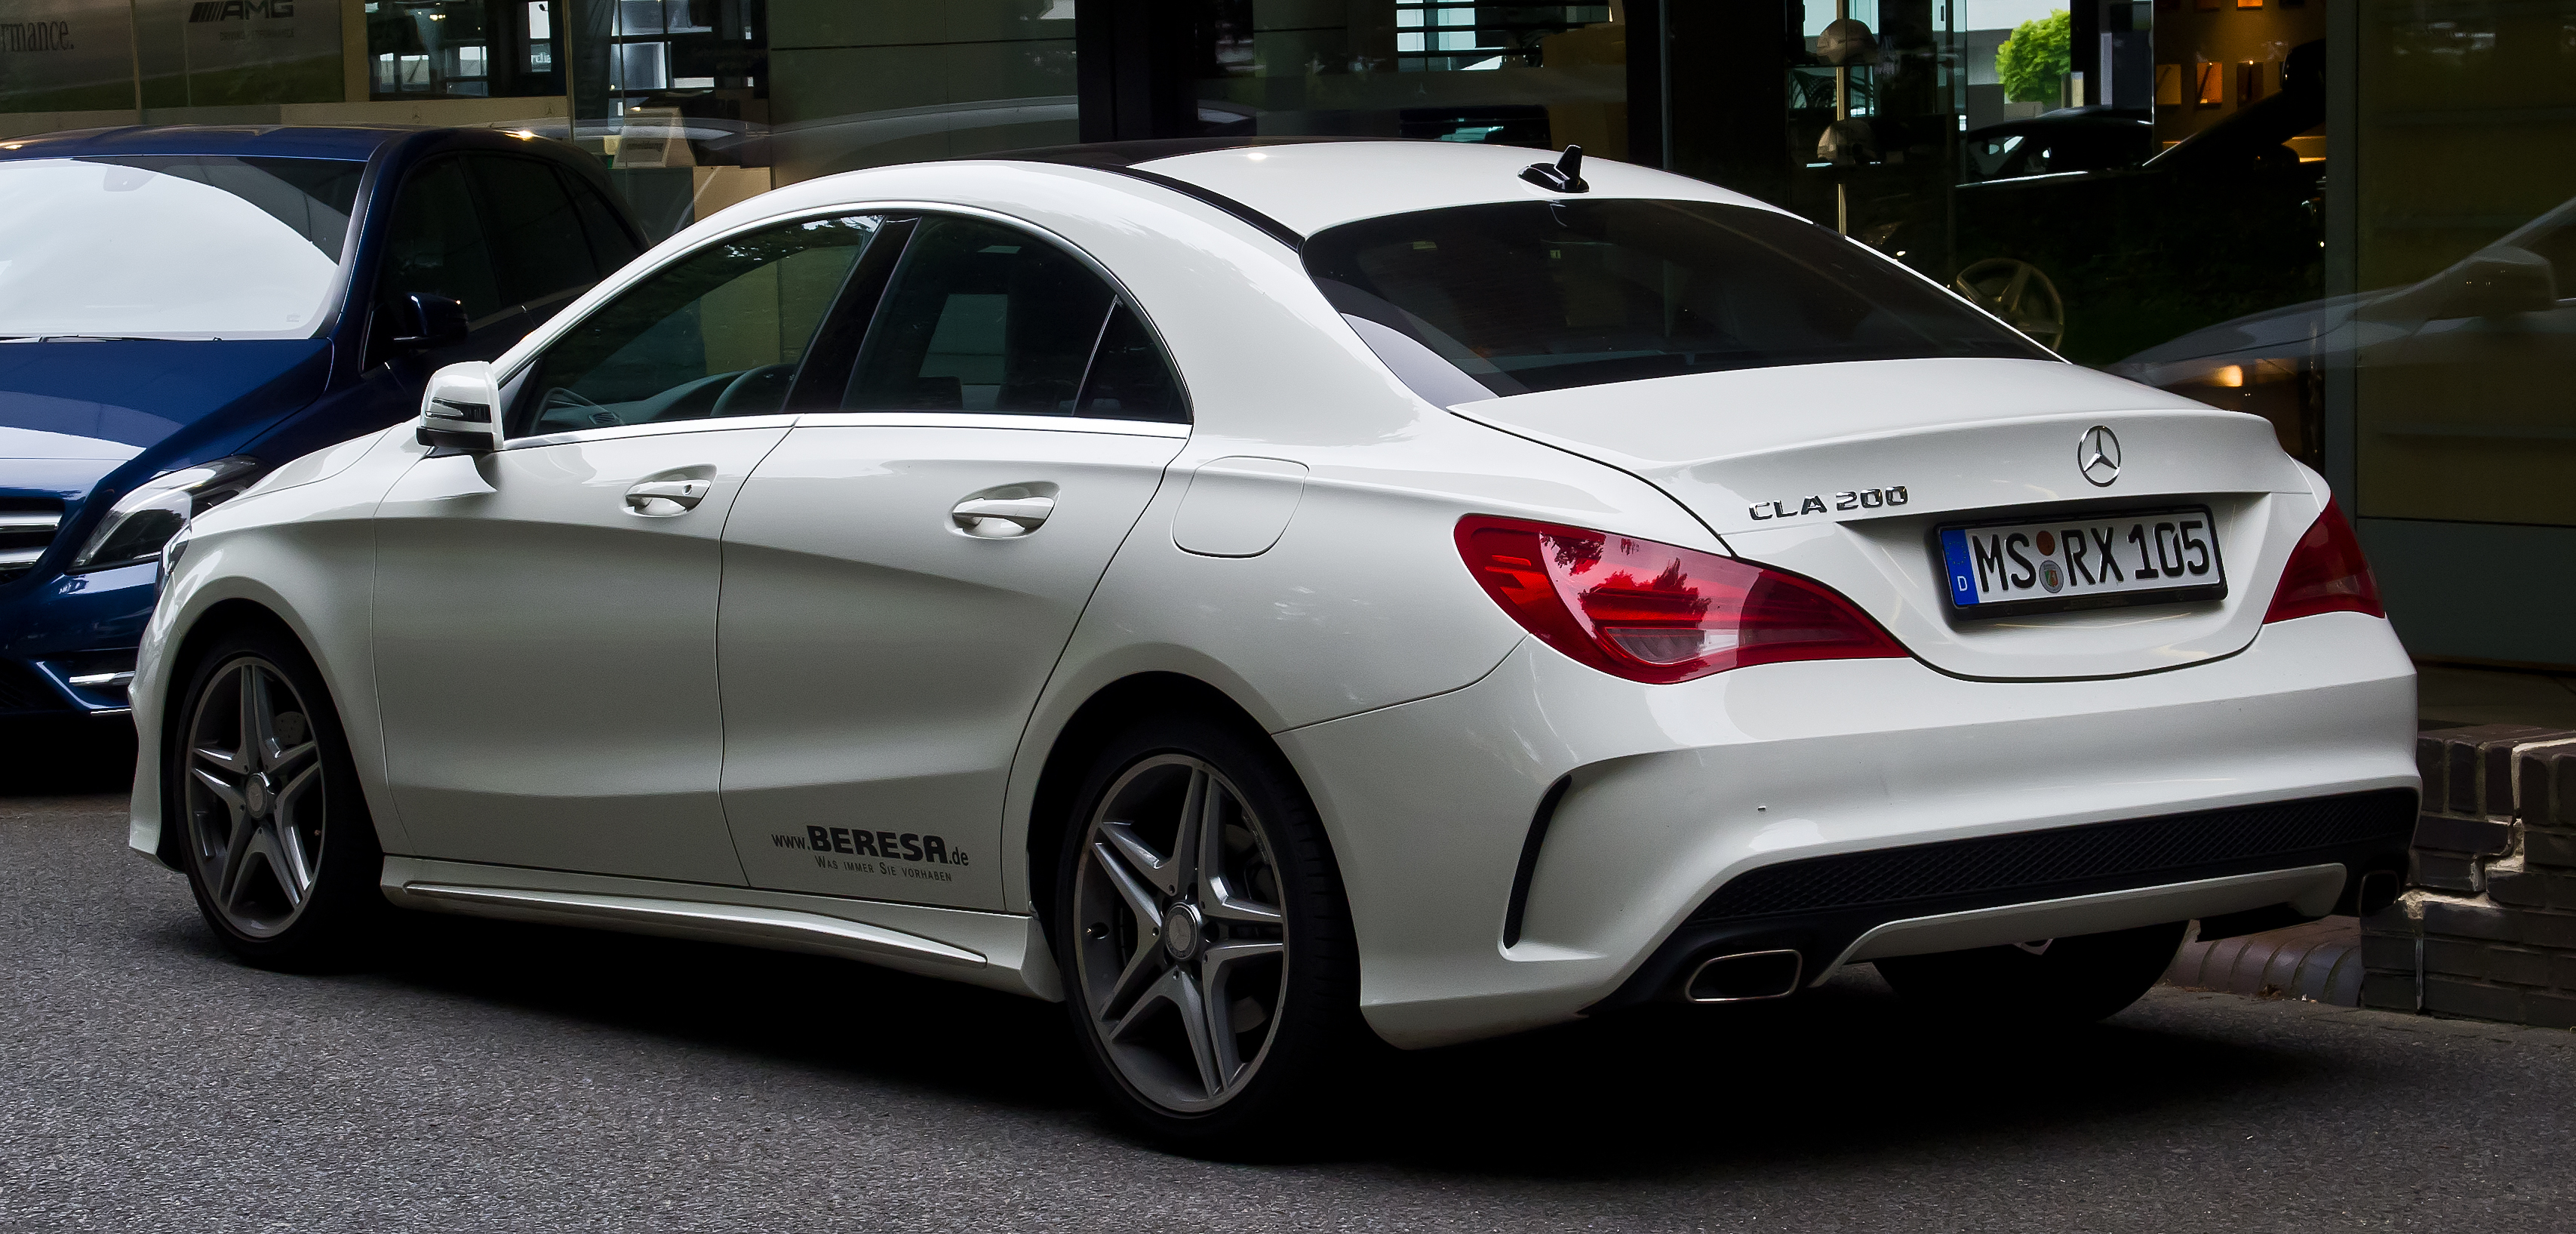 File The frontview of Mercedes Benz GLA45 AMG 4MATIC Edition 1  X156 also 2018 Mercedes Benz Amg Gt C Debuts At Chicago Auto Show besides Biao Mercedes Classe A Gla Prix as well Mercedes Benz 2016 Gla250 Sport 4matic Awd Crossover moreover 398CC97AFD8409FFCA257CBB0004A6F8. on 250 mb gla amg